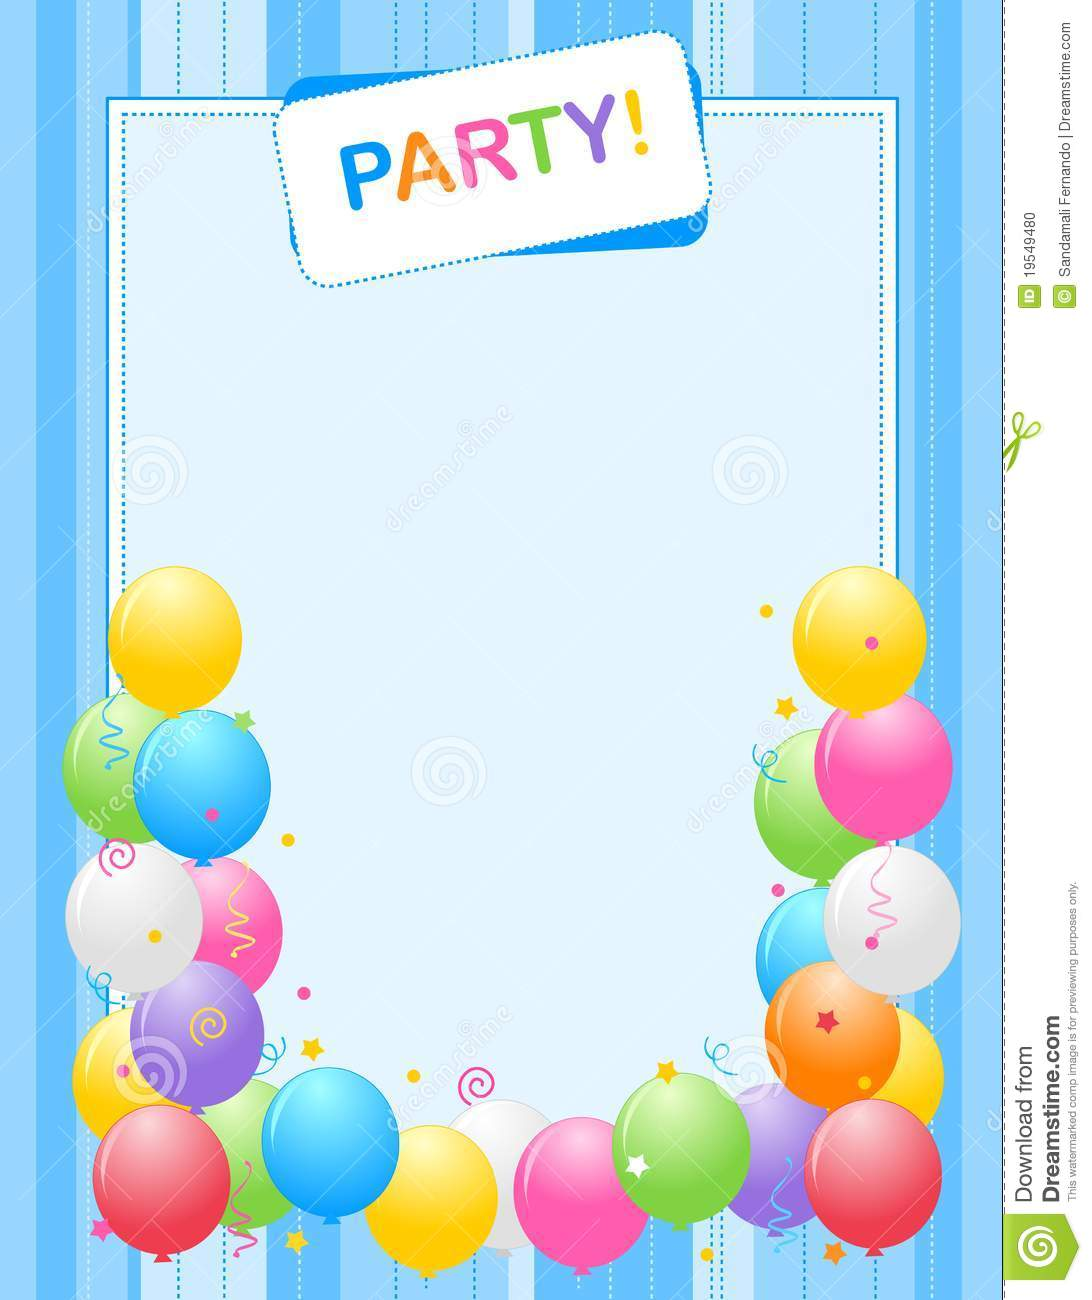 Party Invitation Frame Stock Photo Image 19549480